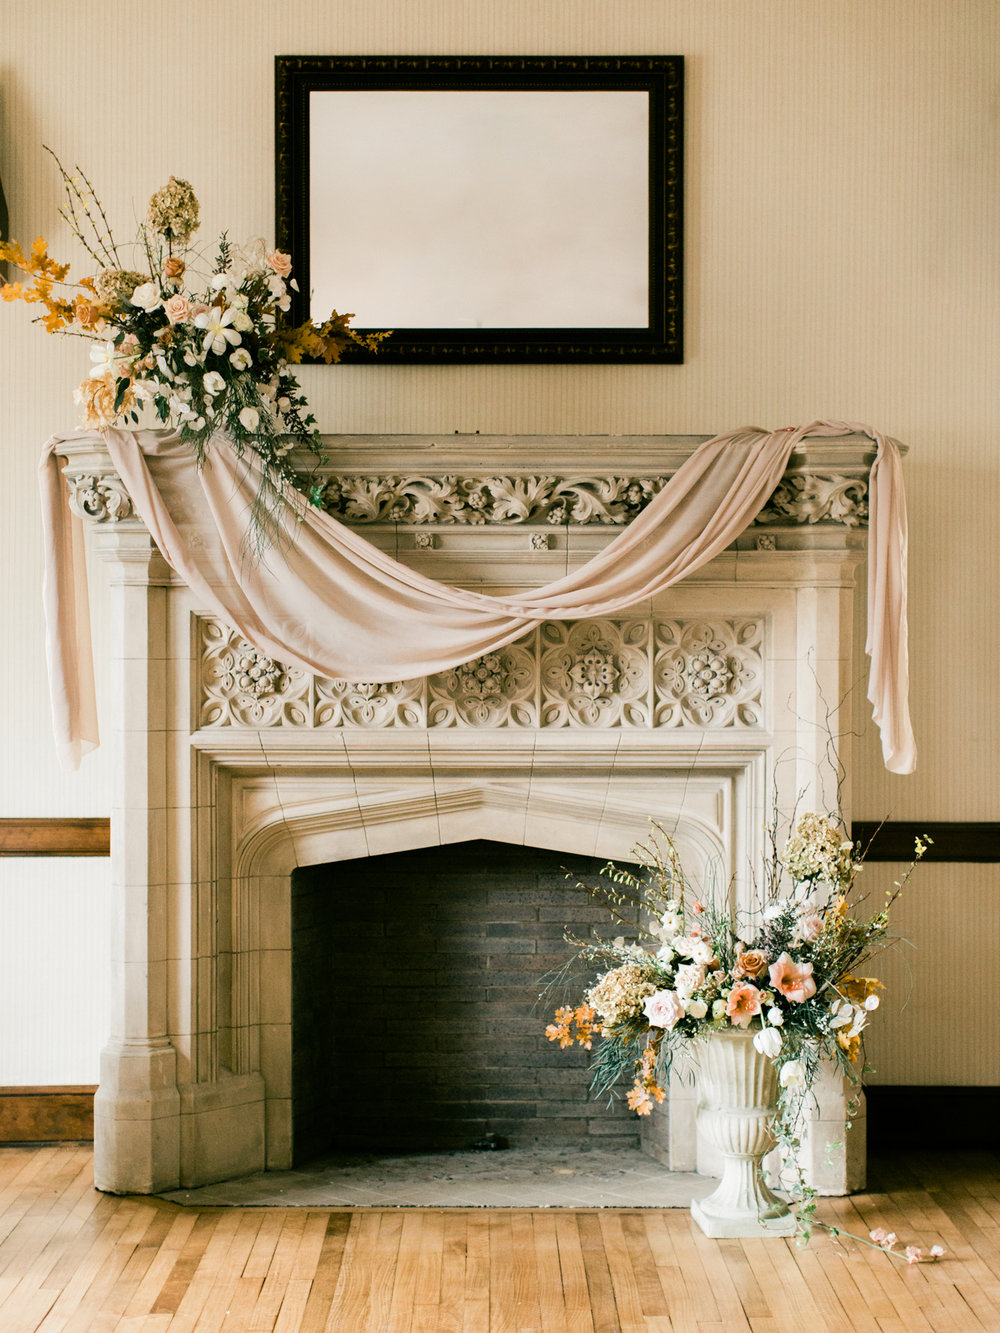 University_club_pittsburgh_wedding_photographer_anna_laero_photography_bumbleburgh_events_wood_and_grace_design_7.jpg